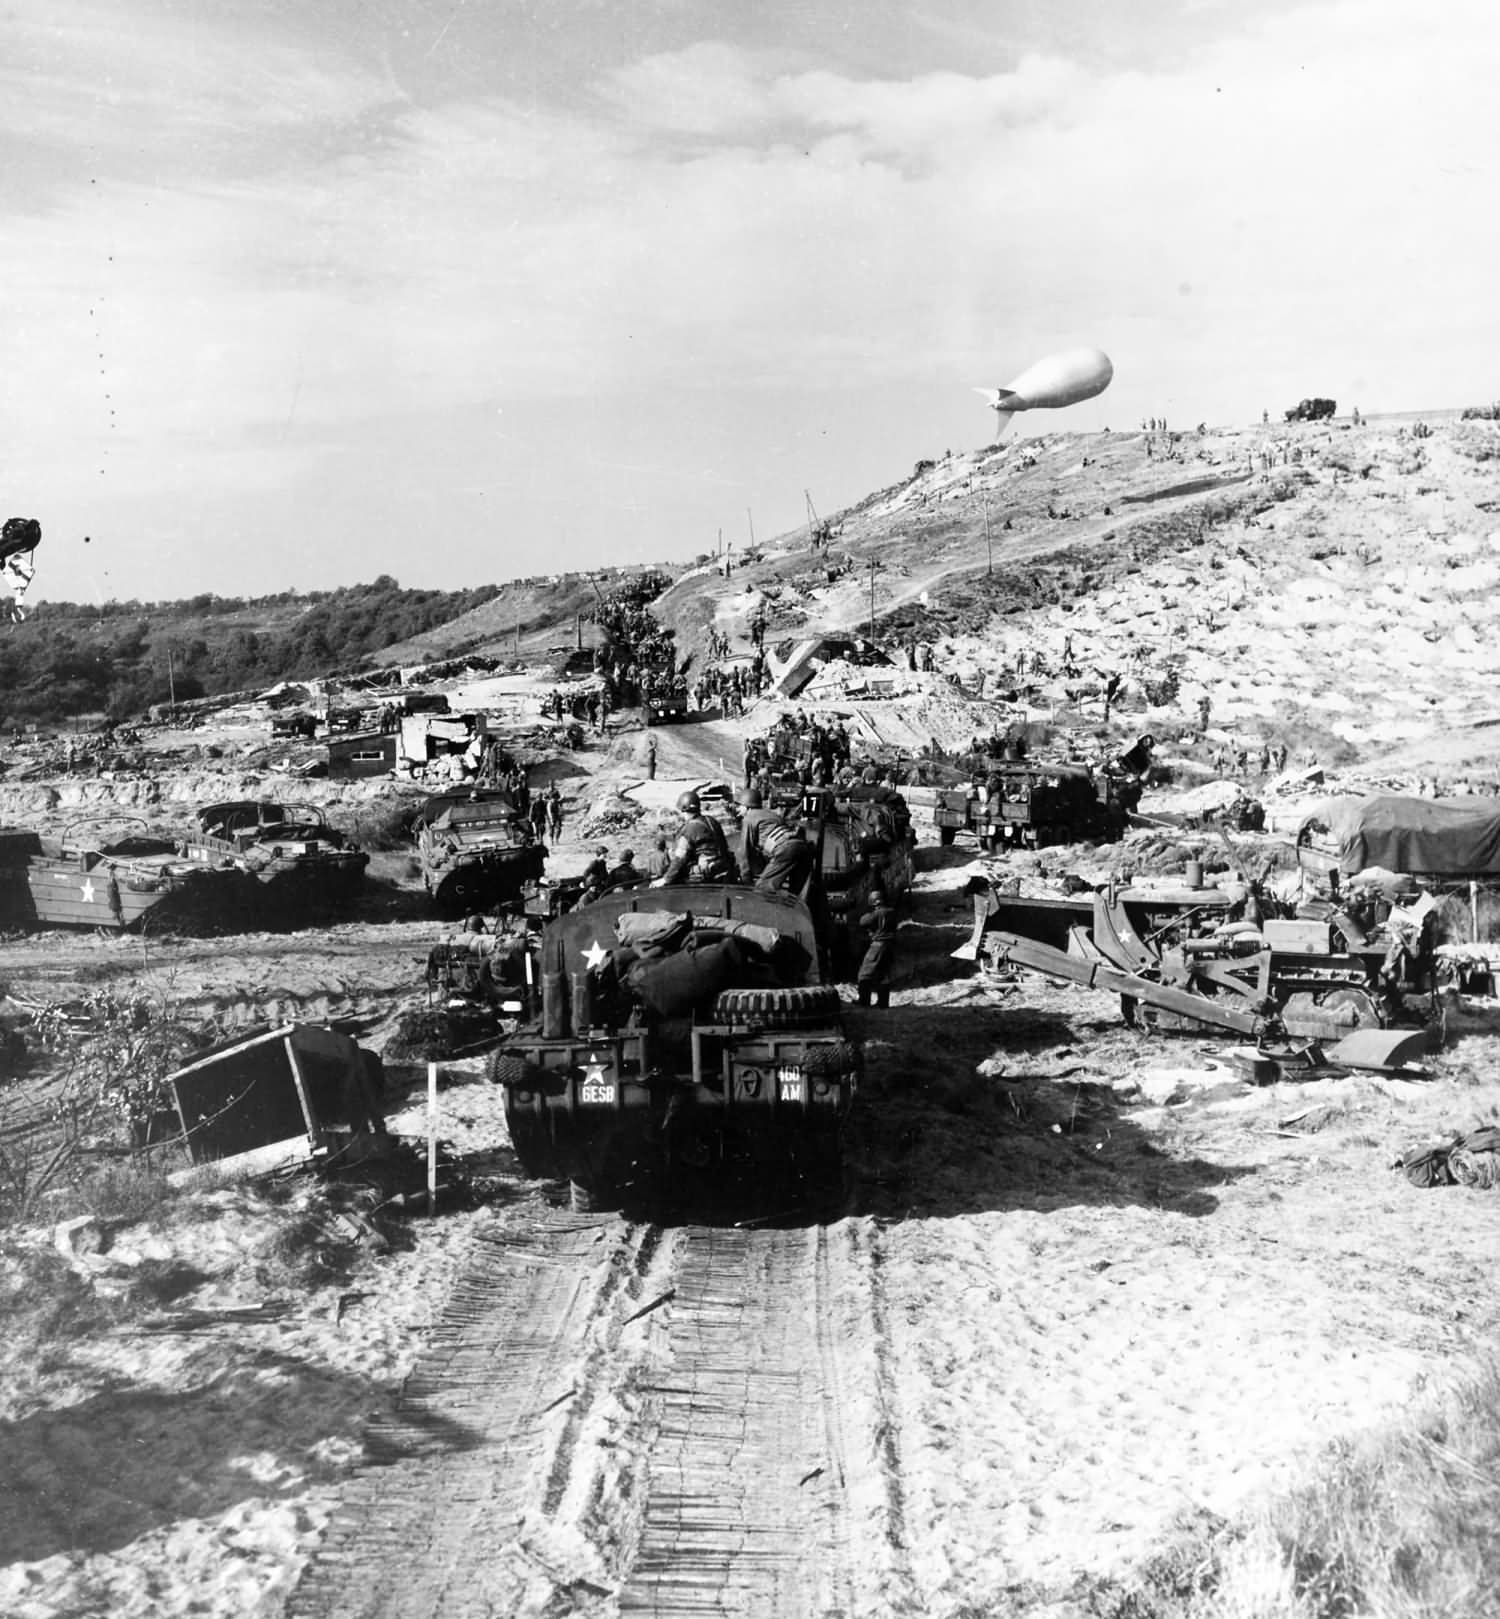 US Army vehicles move inland from a Normandy invasion beach